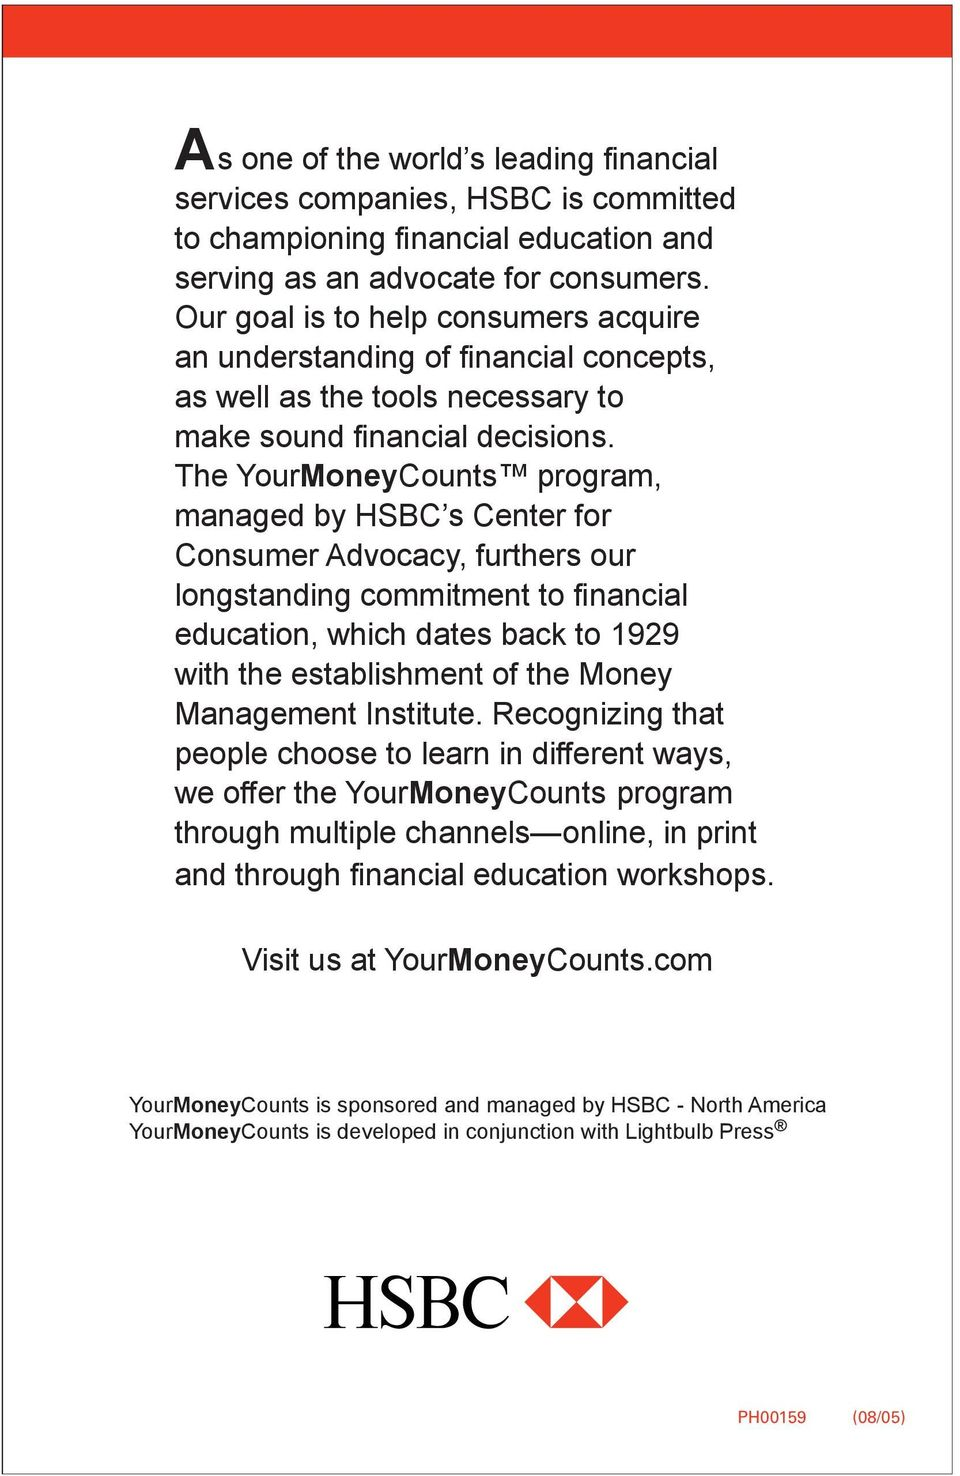 The YourMoneyCounts program, managed by HSBC s Center for Consumer Advocacy, furthers our longstanding commitment to fi nancial education, which dates back to 1929 with the establishment of the Money